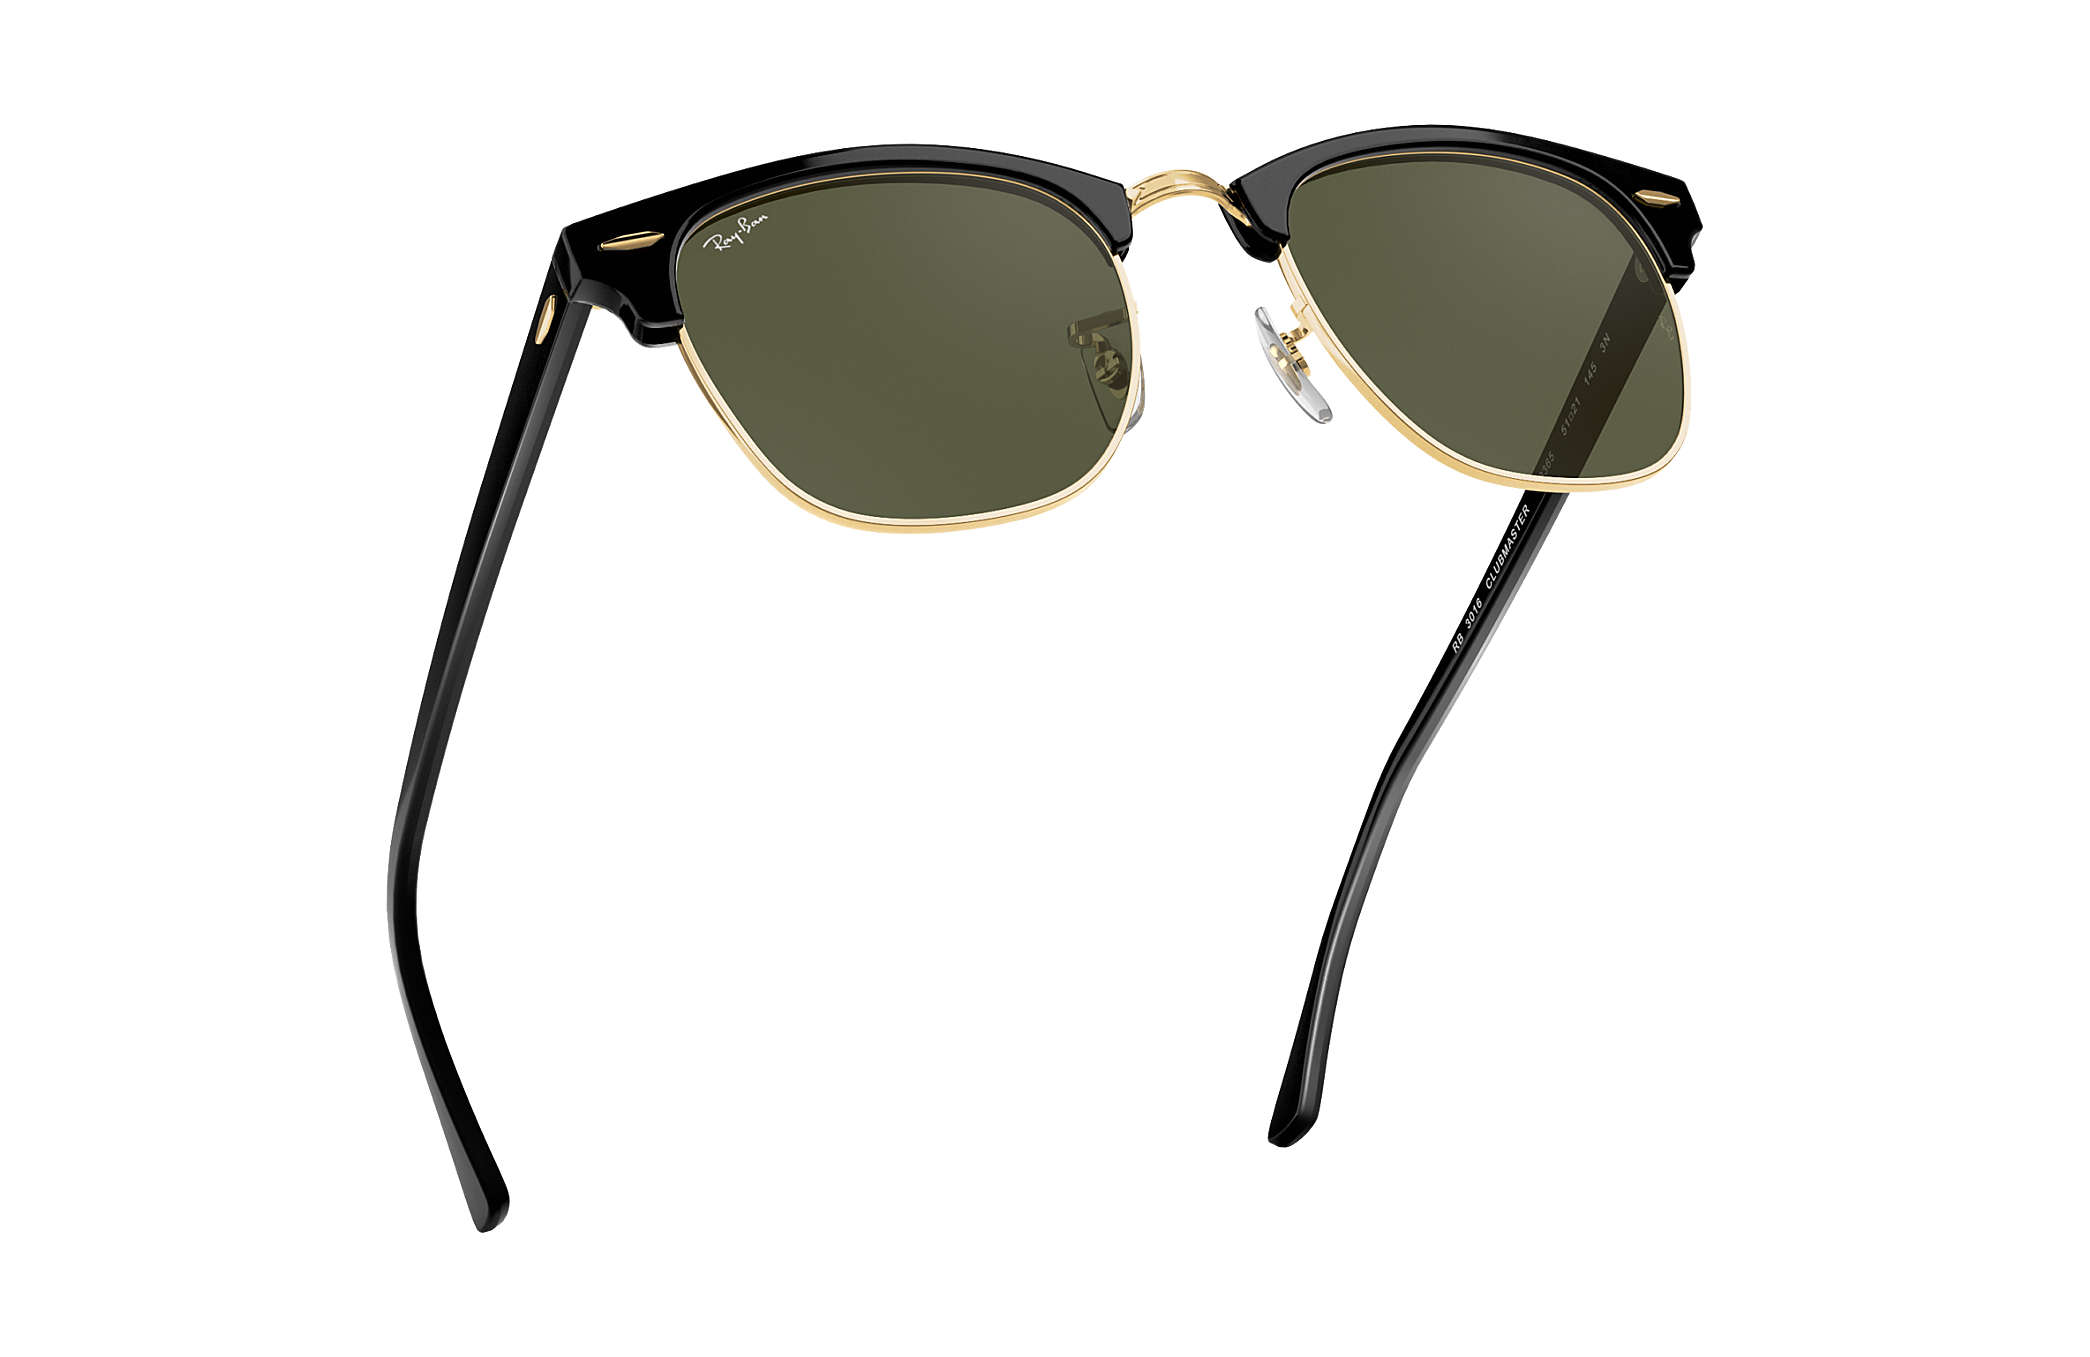 2d65d0e3b1d Ray-Ban Clubmaster Classic RB3016 Black - Acetate - Green Lenses ...